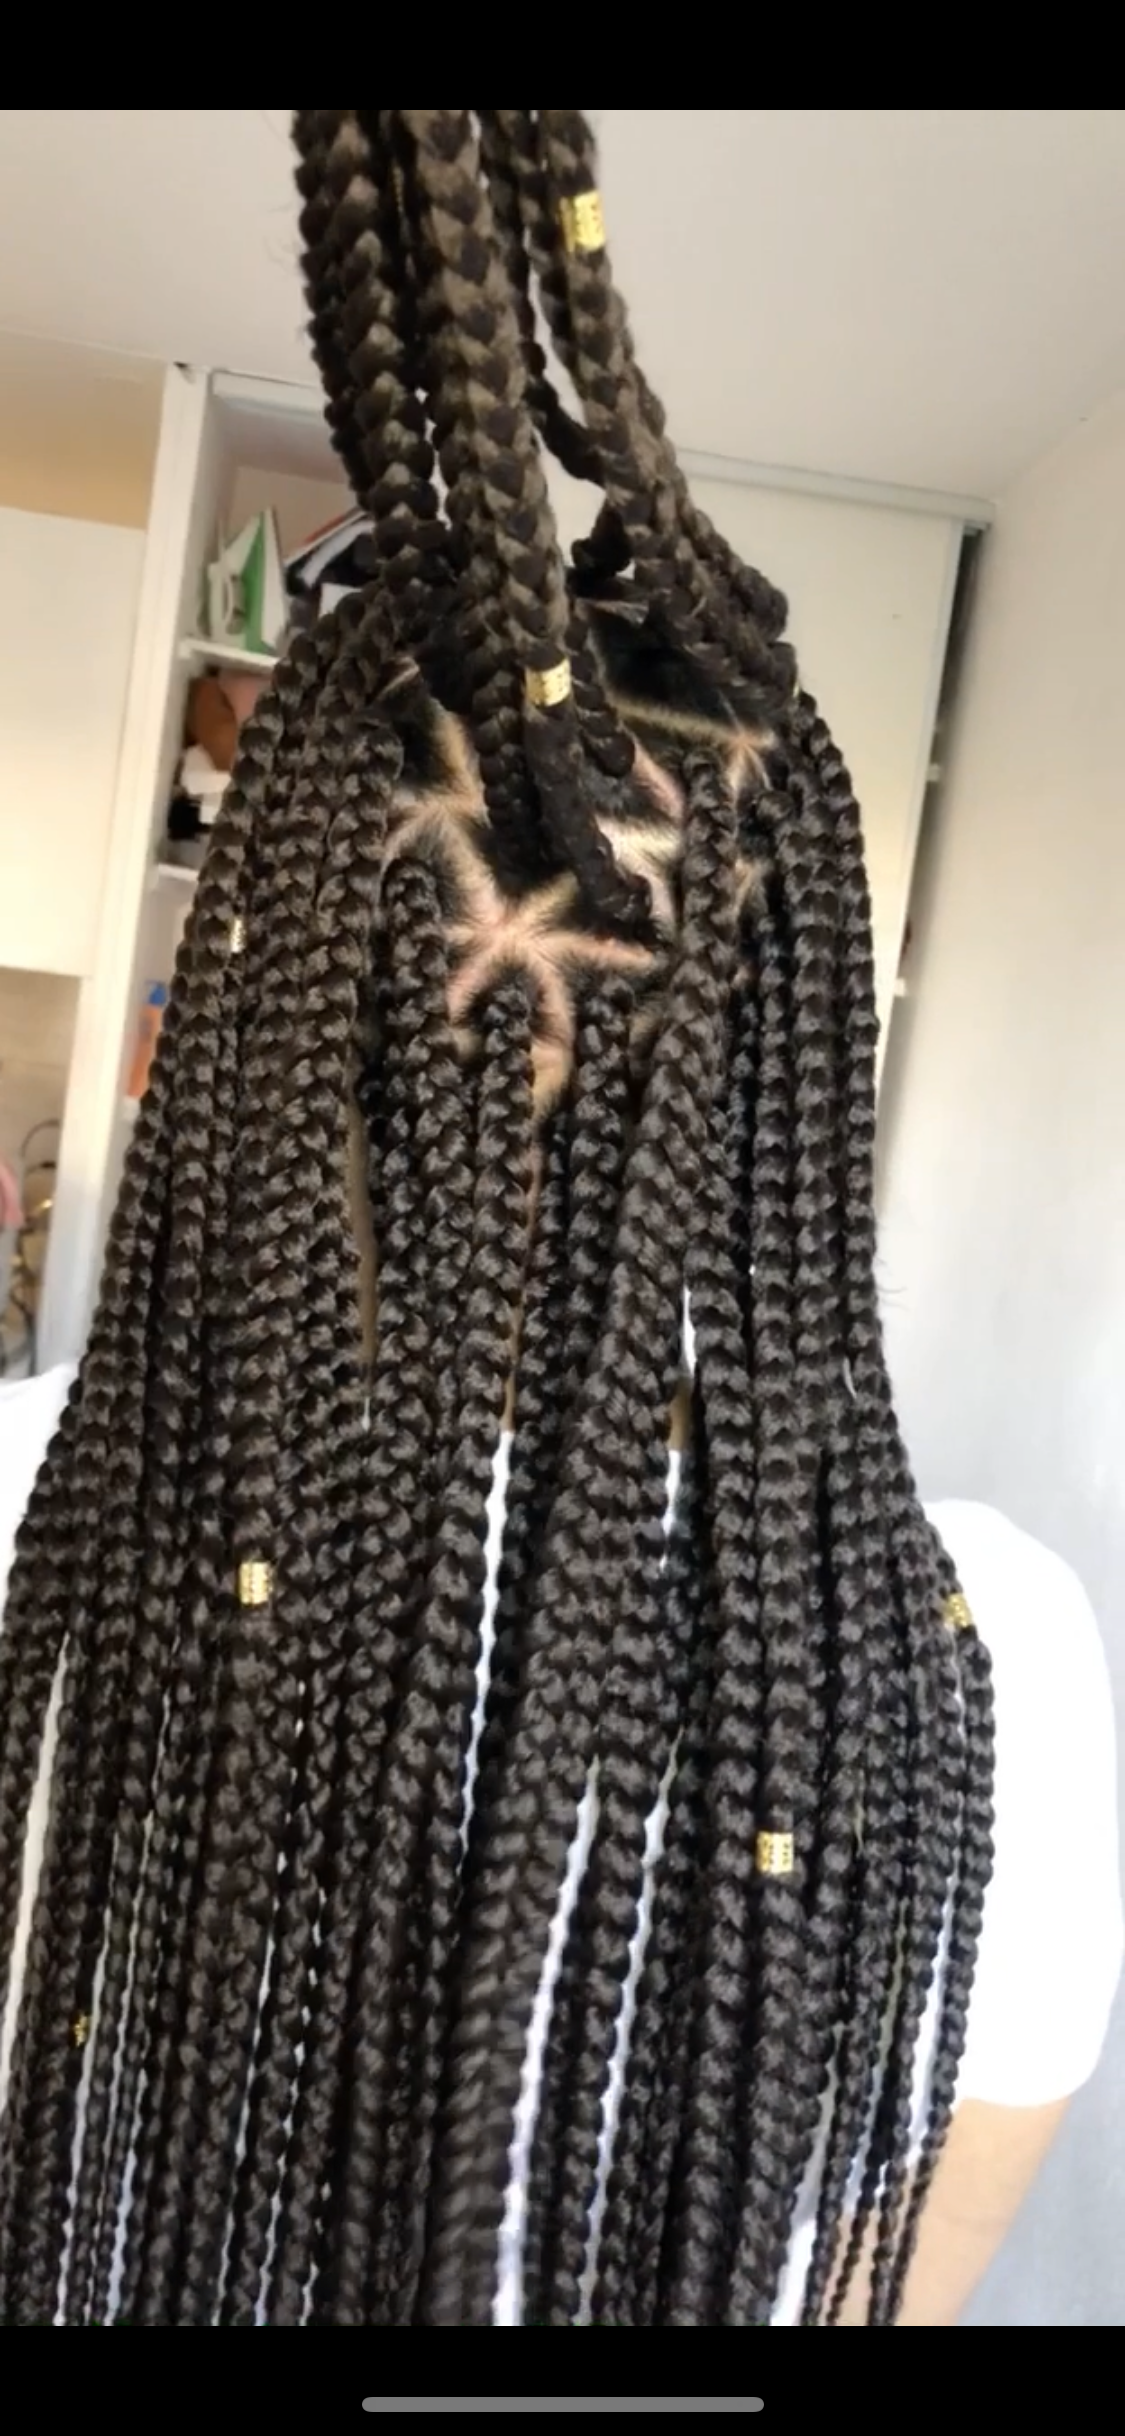 salon de coiffure afro tresse tresses box braids crochet braids vanilles tissages paris 75 77 78 91 92 93 94 95 KMUQUDLY